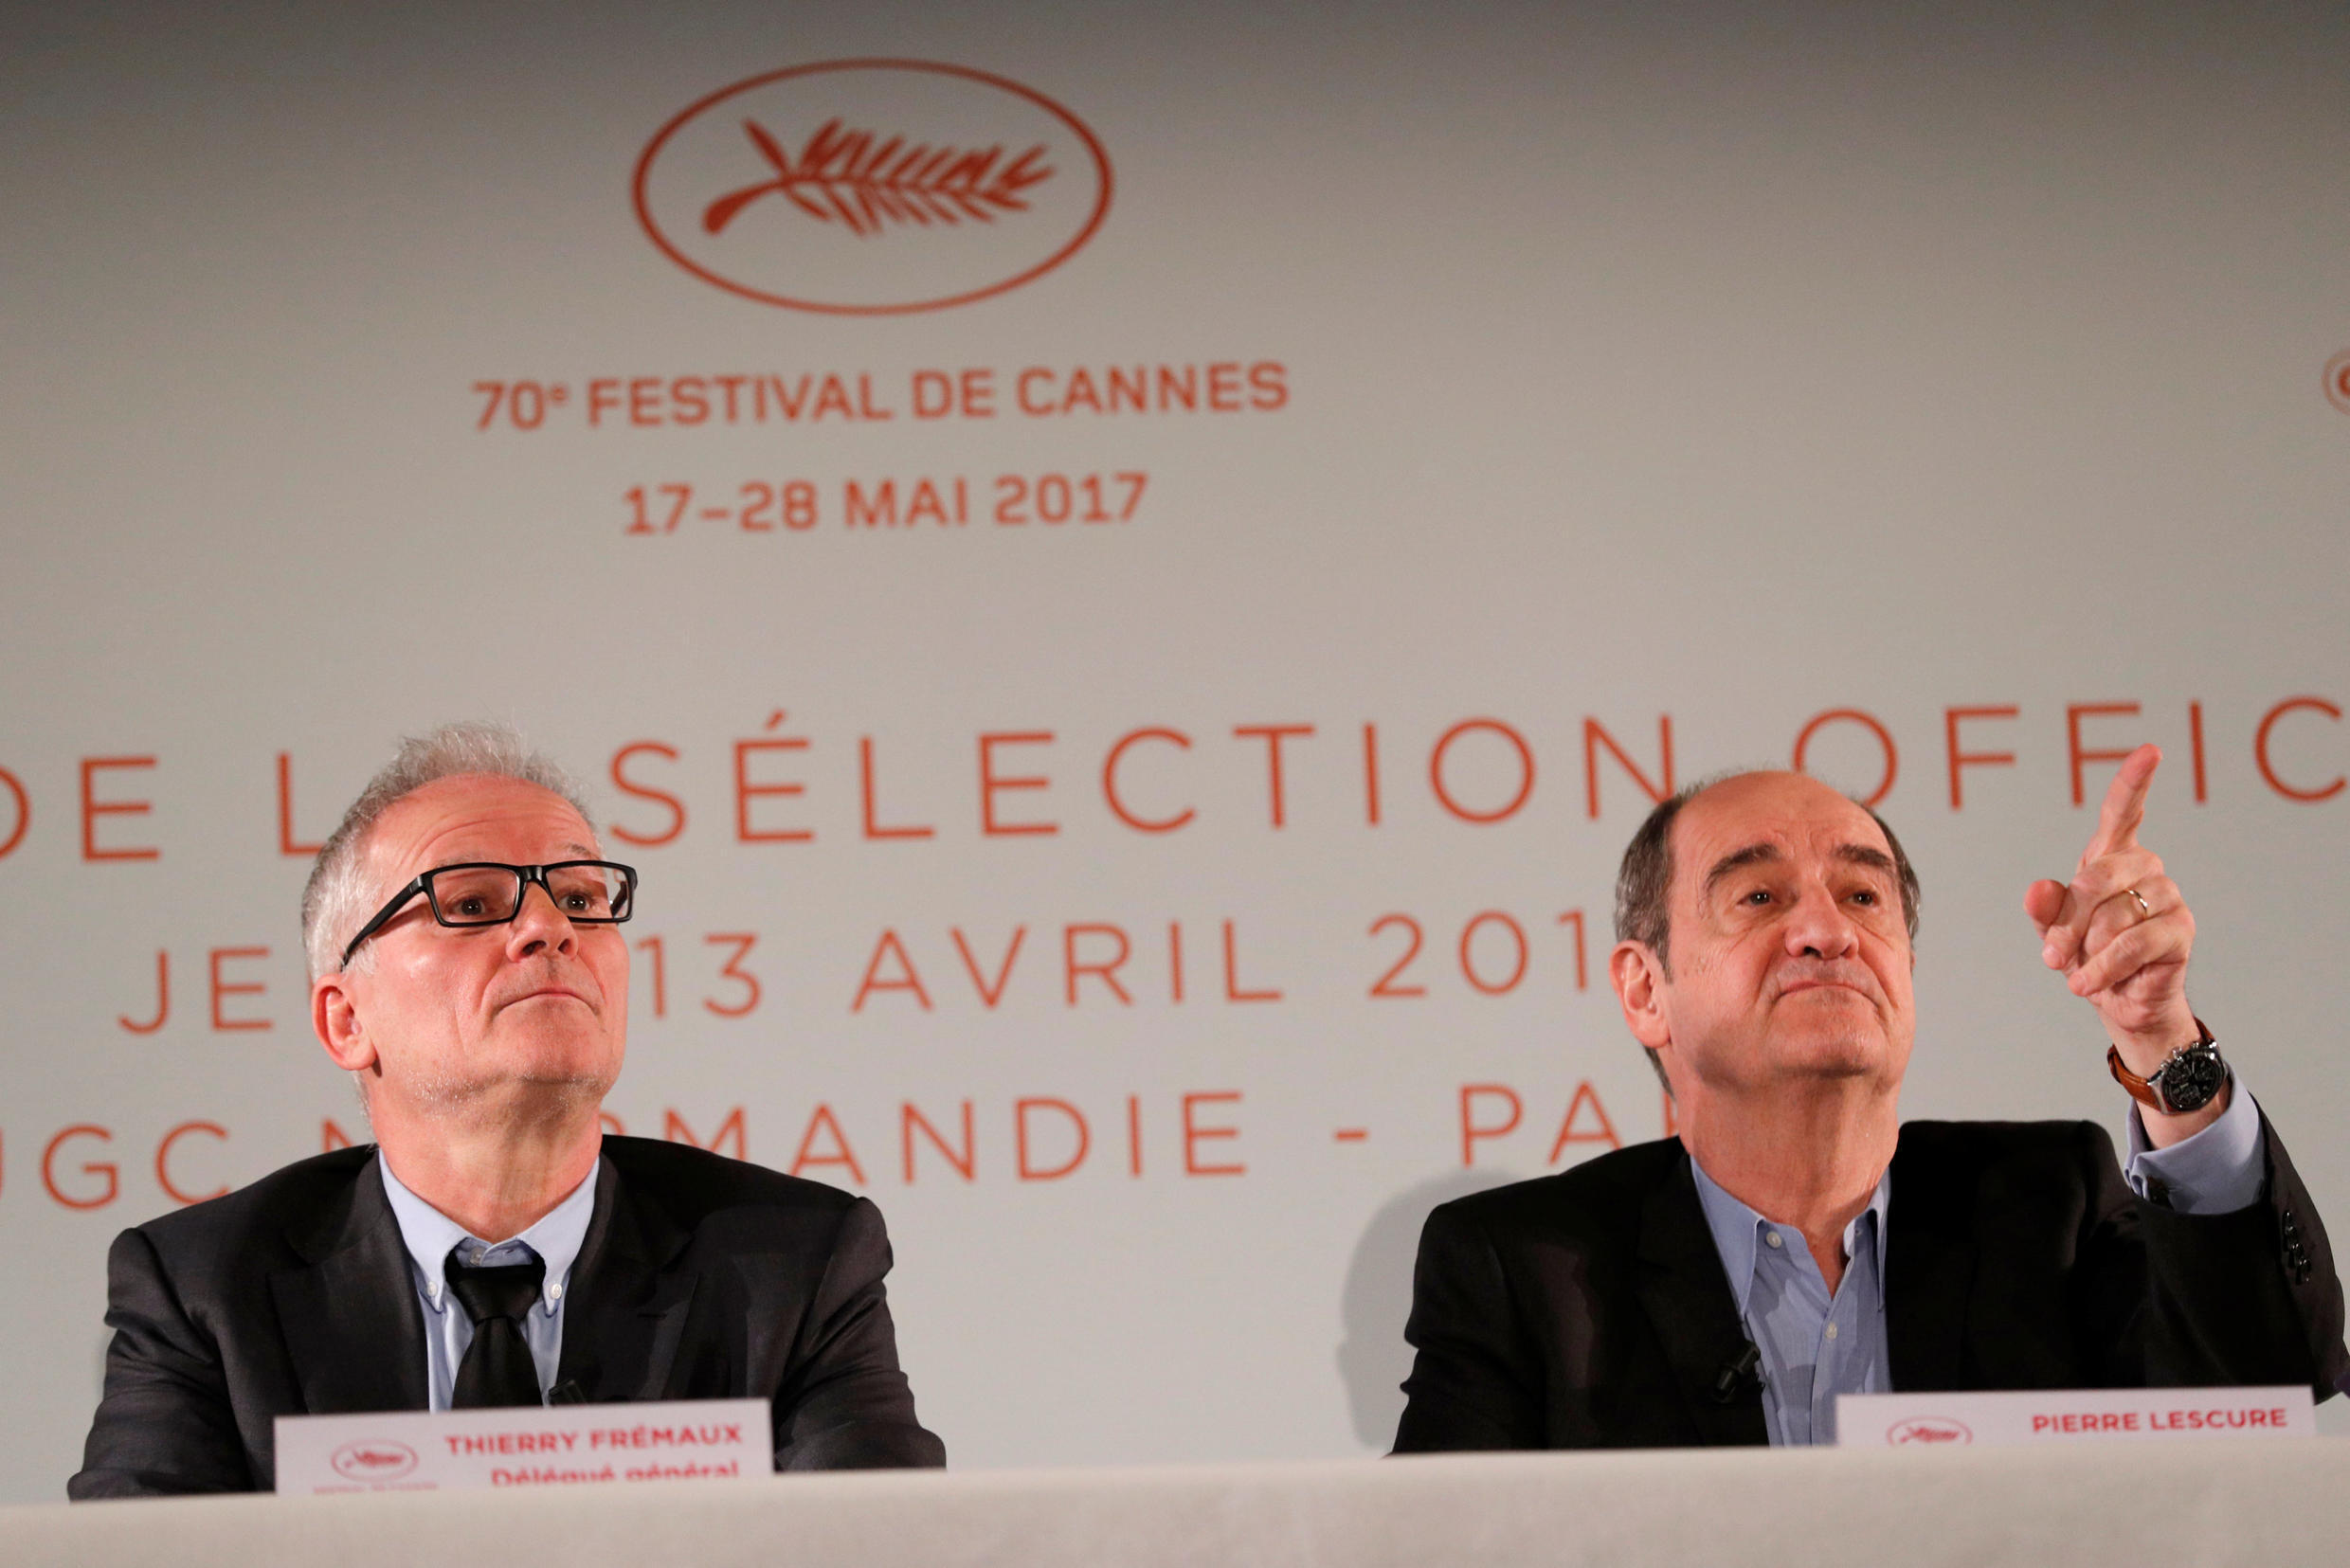 Cannes Festival director Thierry Frémaux (L) and Festival President Pierre Lescure, at a press conference in 2017